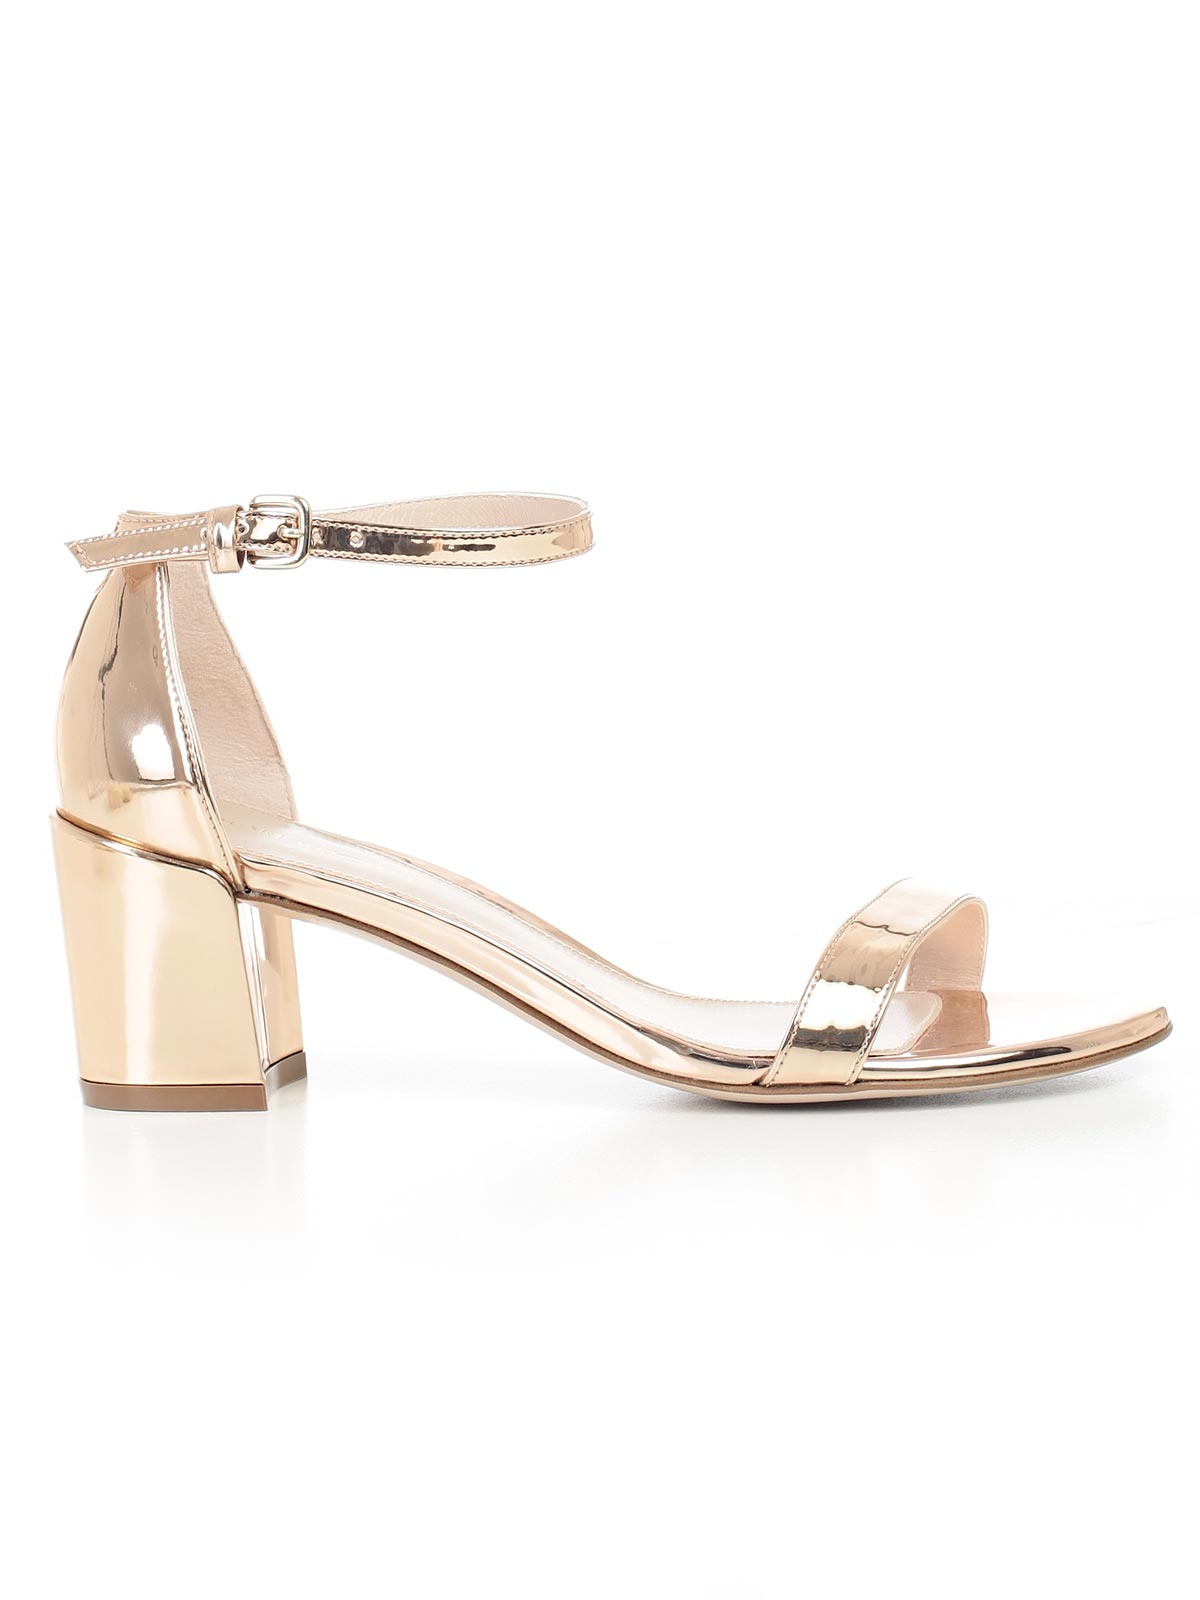 Picture of Stuart Weitzman Sandals